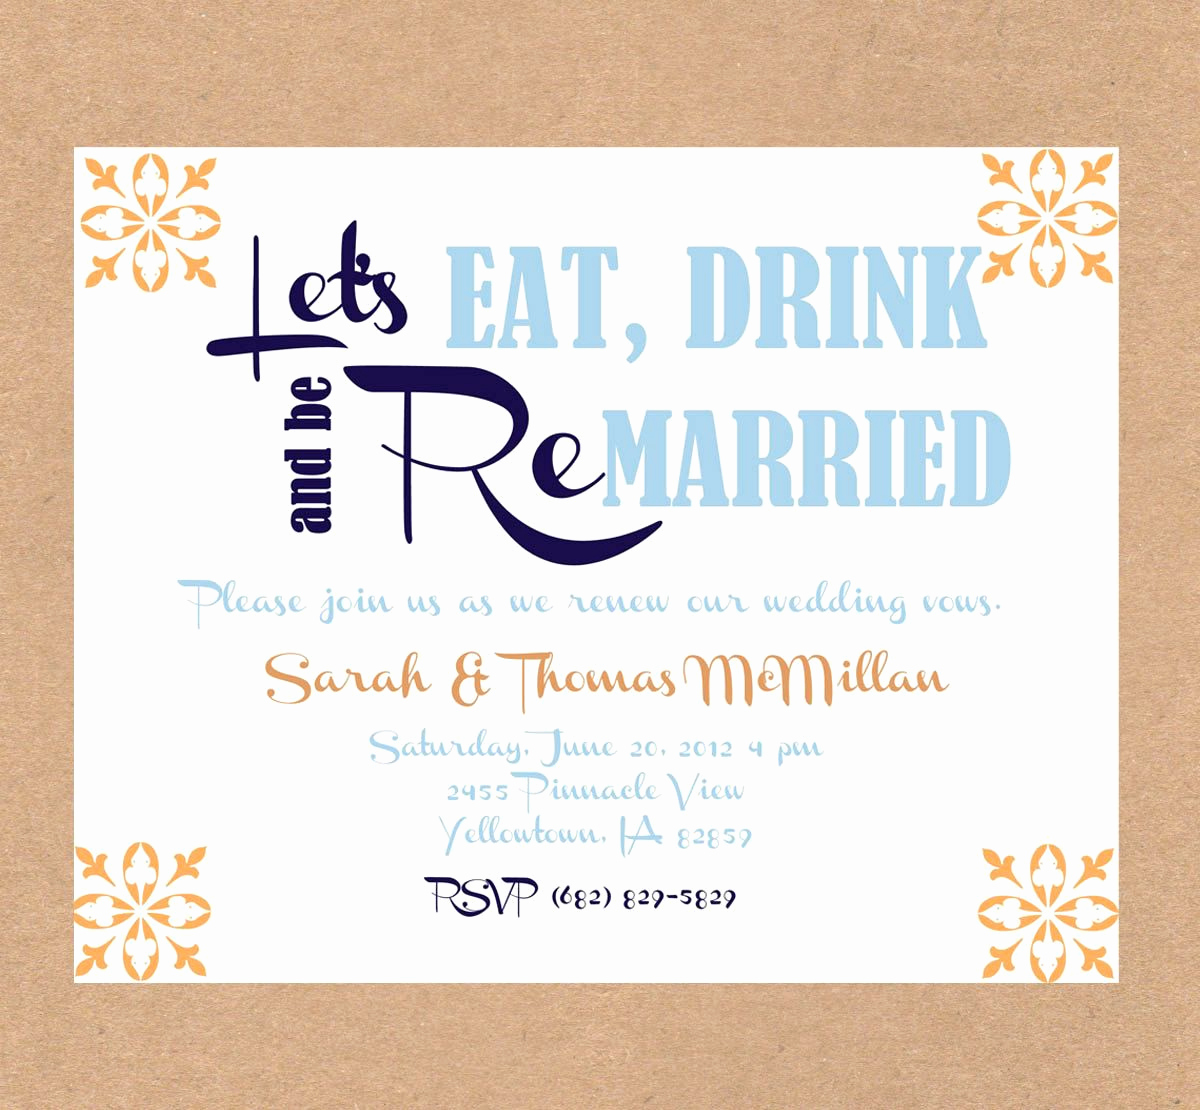 Vow Renewal Invitation Wording Inspirational Vow Renewal Invitation Eat Drink and Be Married